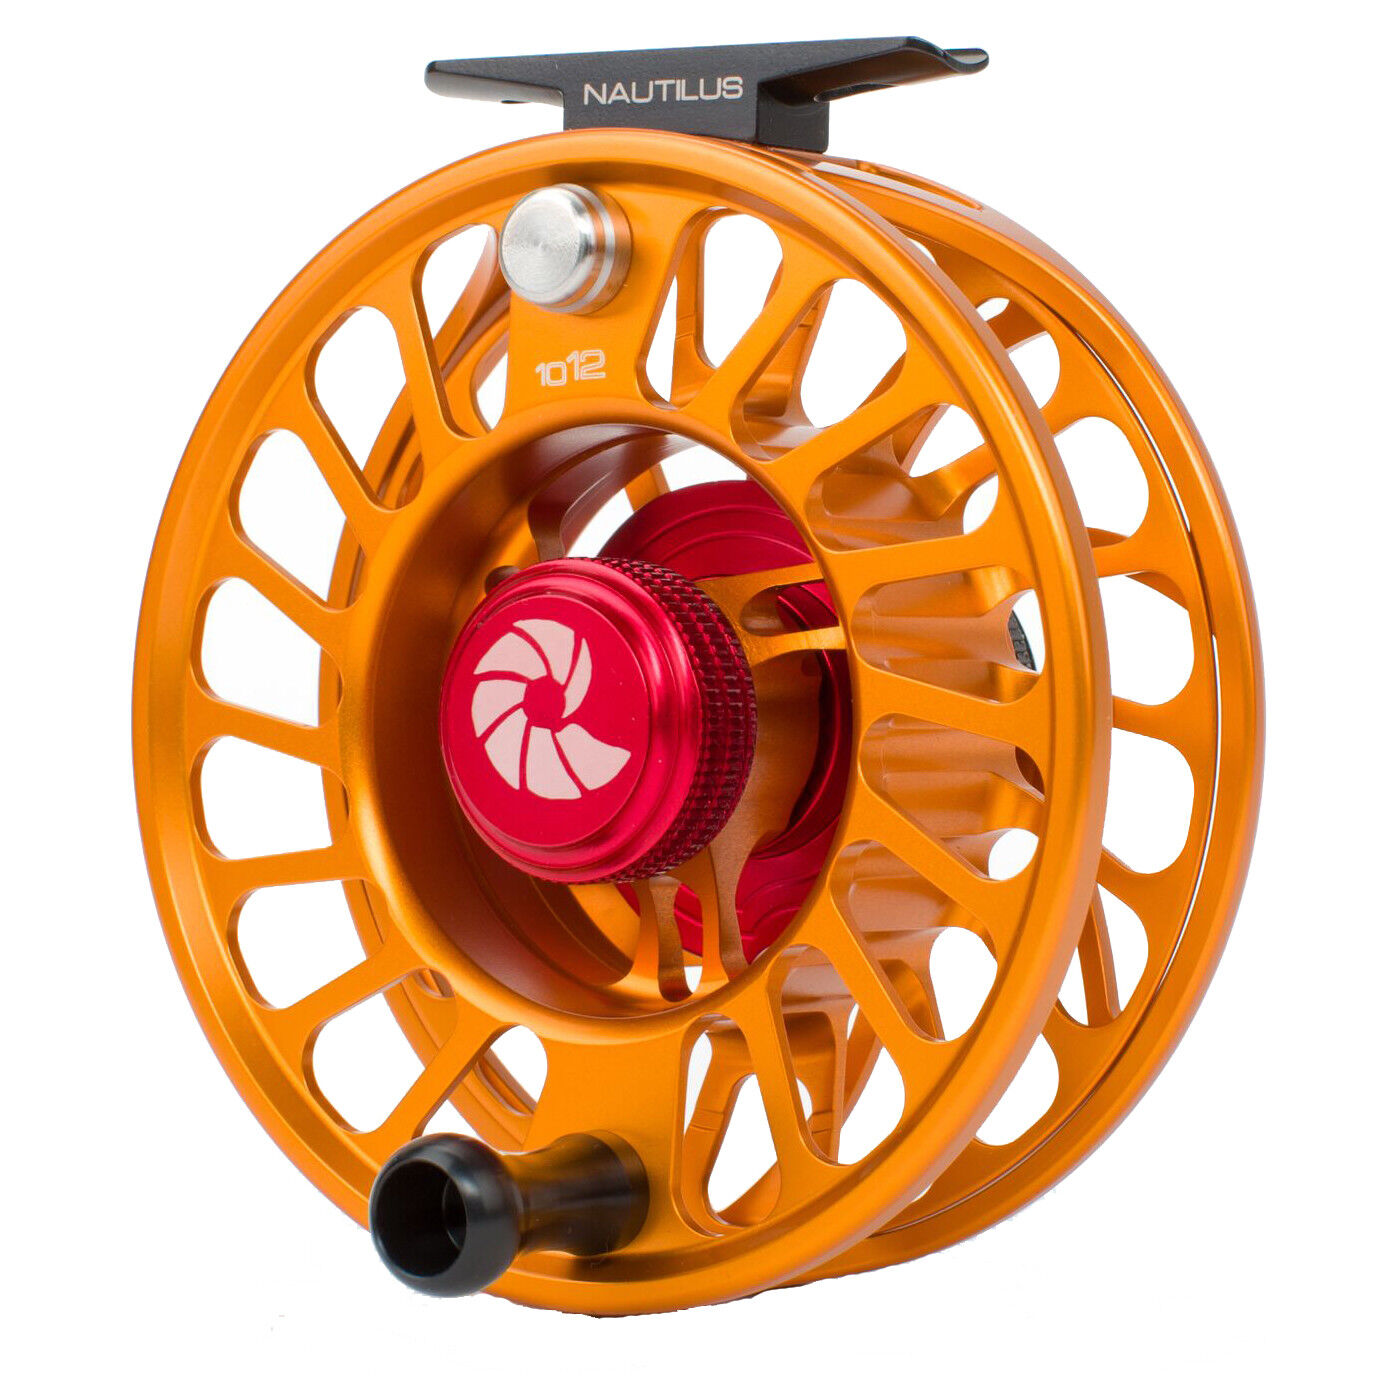 Nautilus CCF-X2 10 12 Fly Fishing Reel - orange (10-12  WT) NEW  - Free US Ship  low 40% price